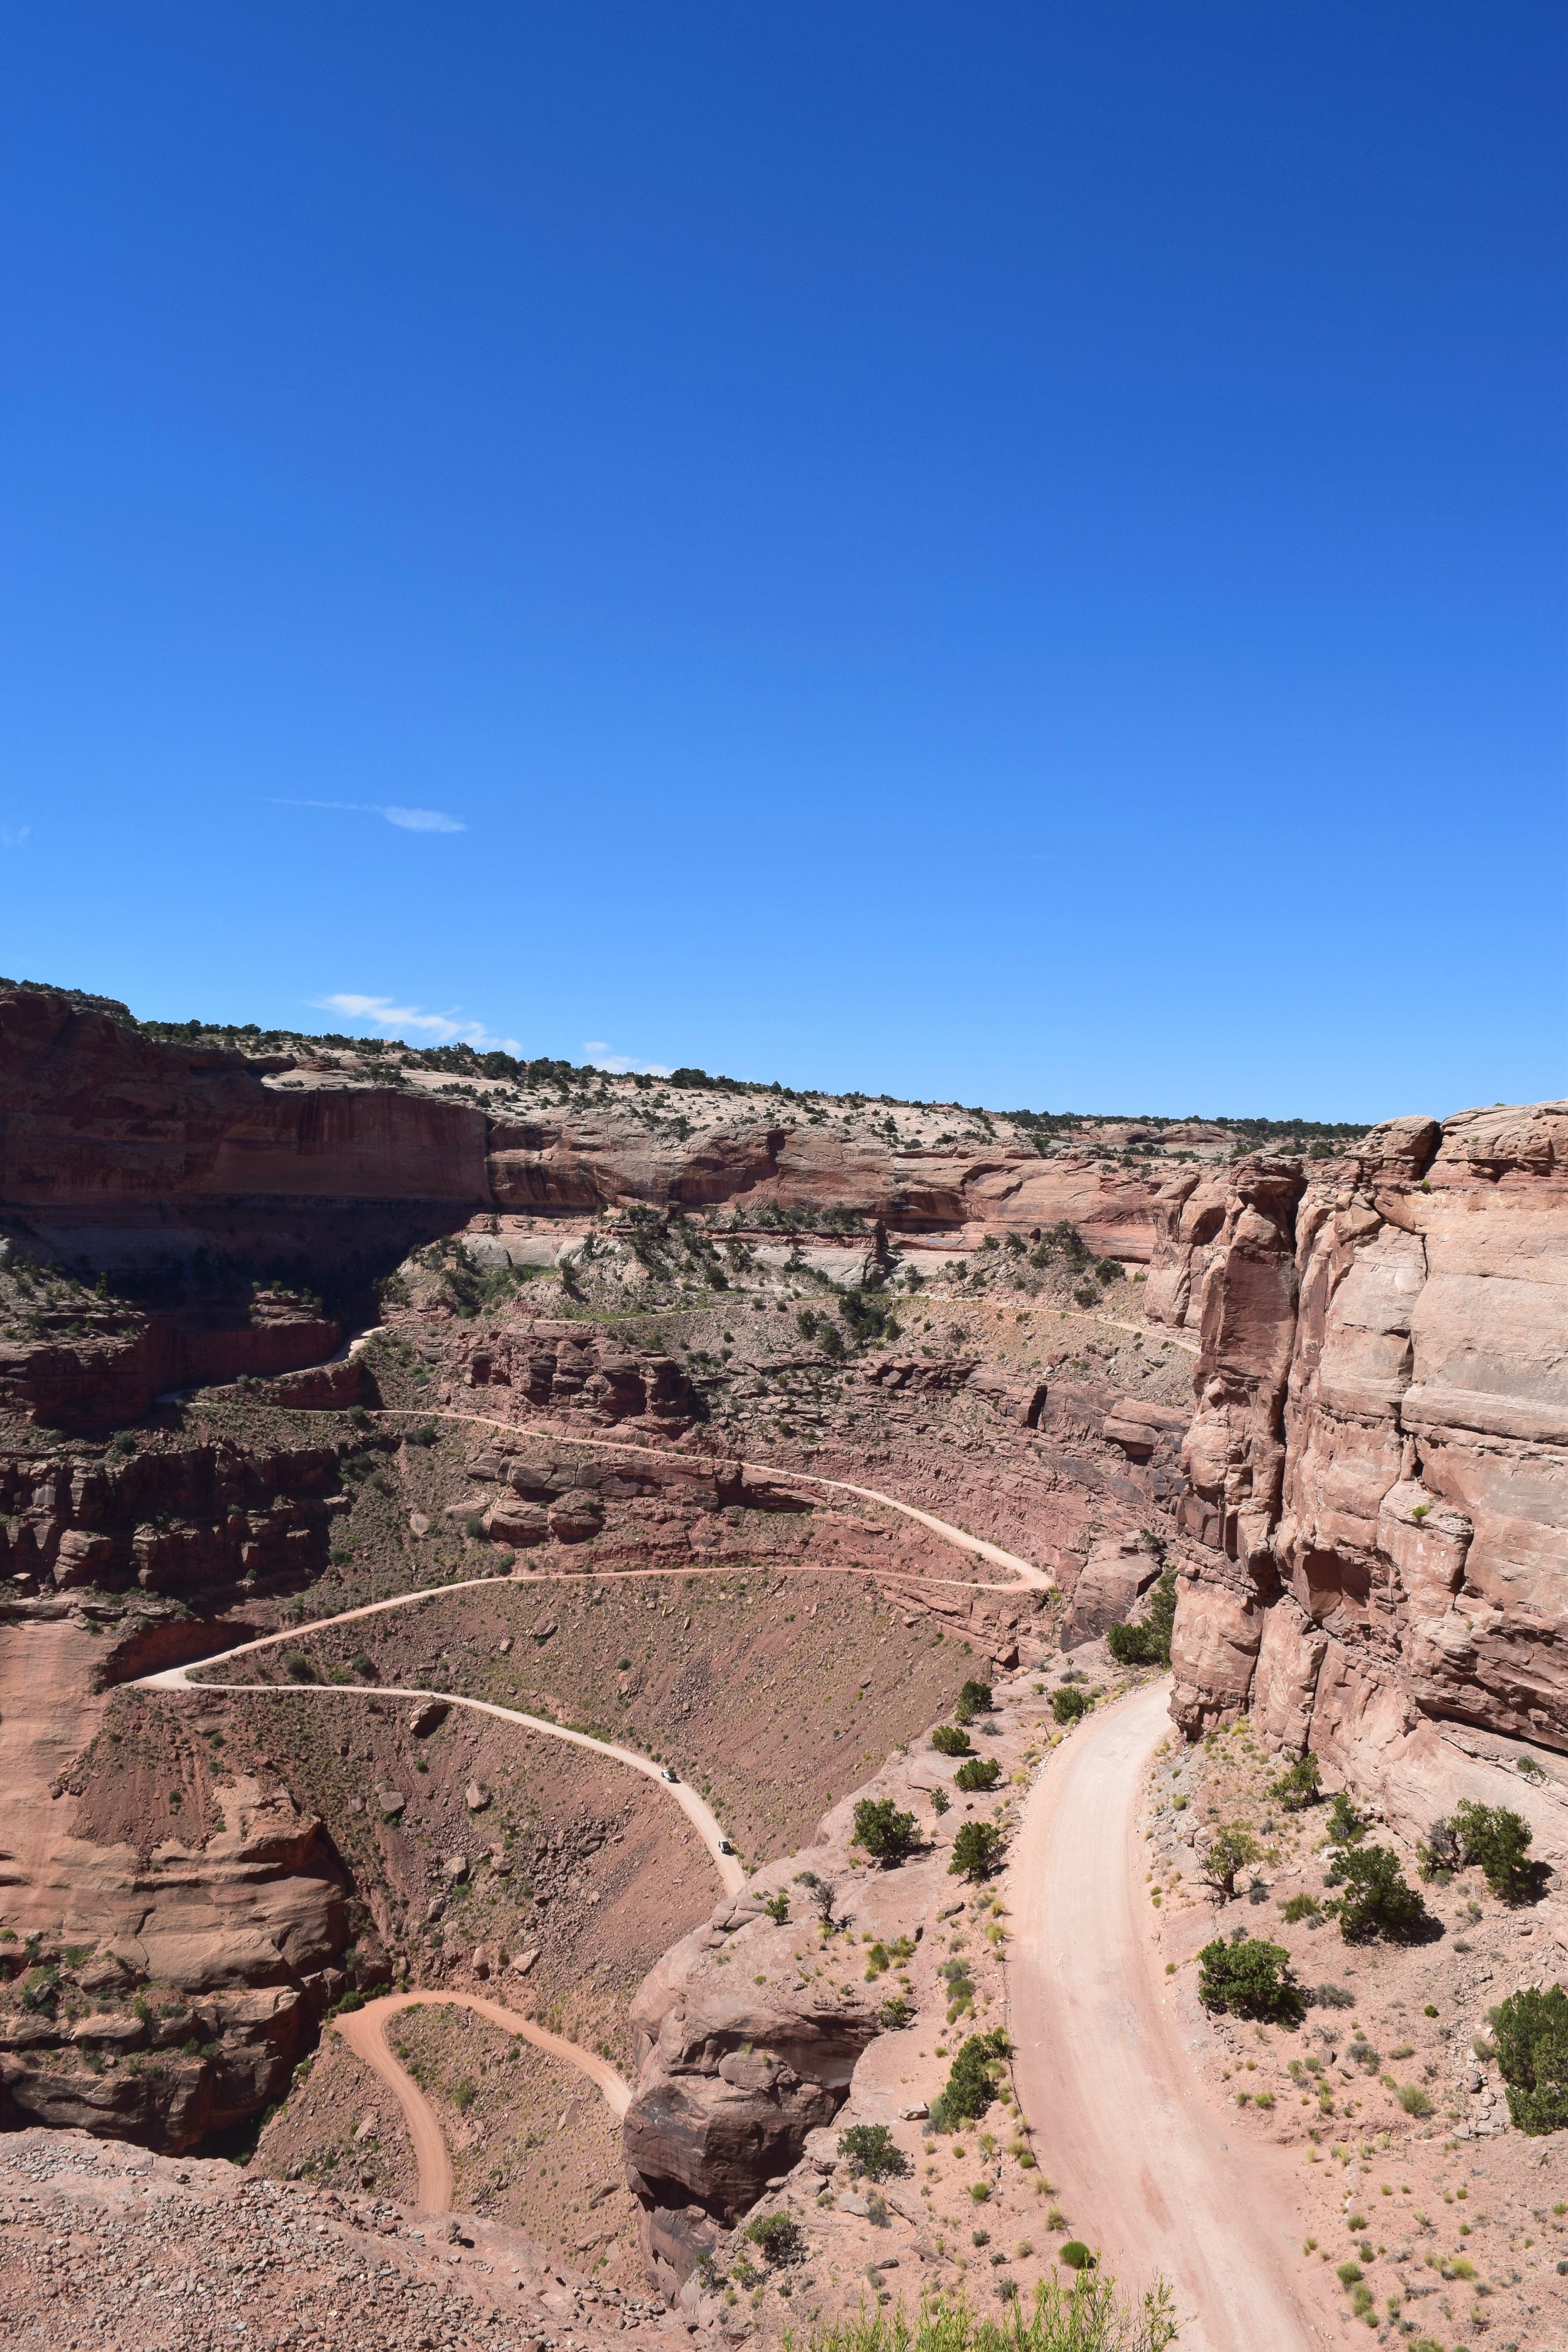 Shafer Trail (leads to White Rim Road)with two full sized jeeps for scale. This road used to be used for herding livestock, imagine making this climb/descent several times with hundreds of sheep in front of you.